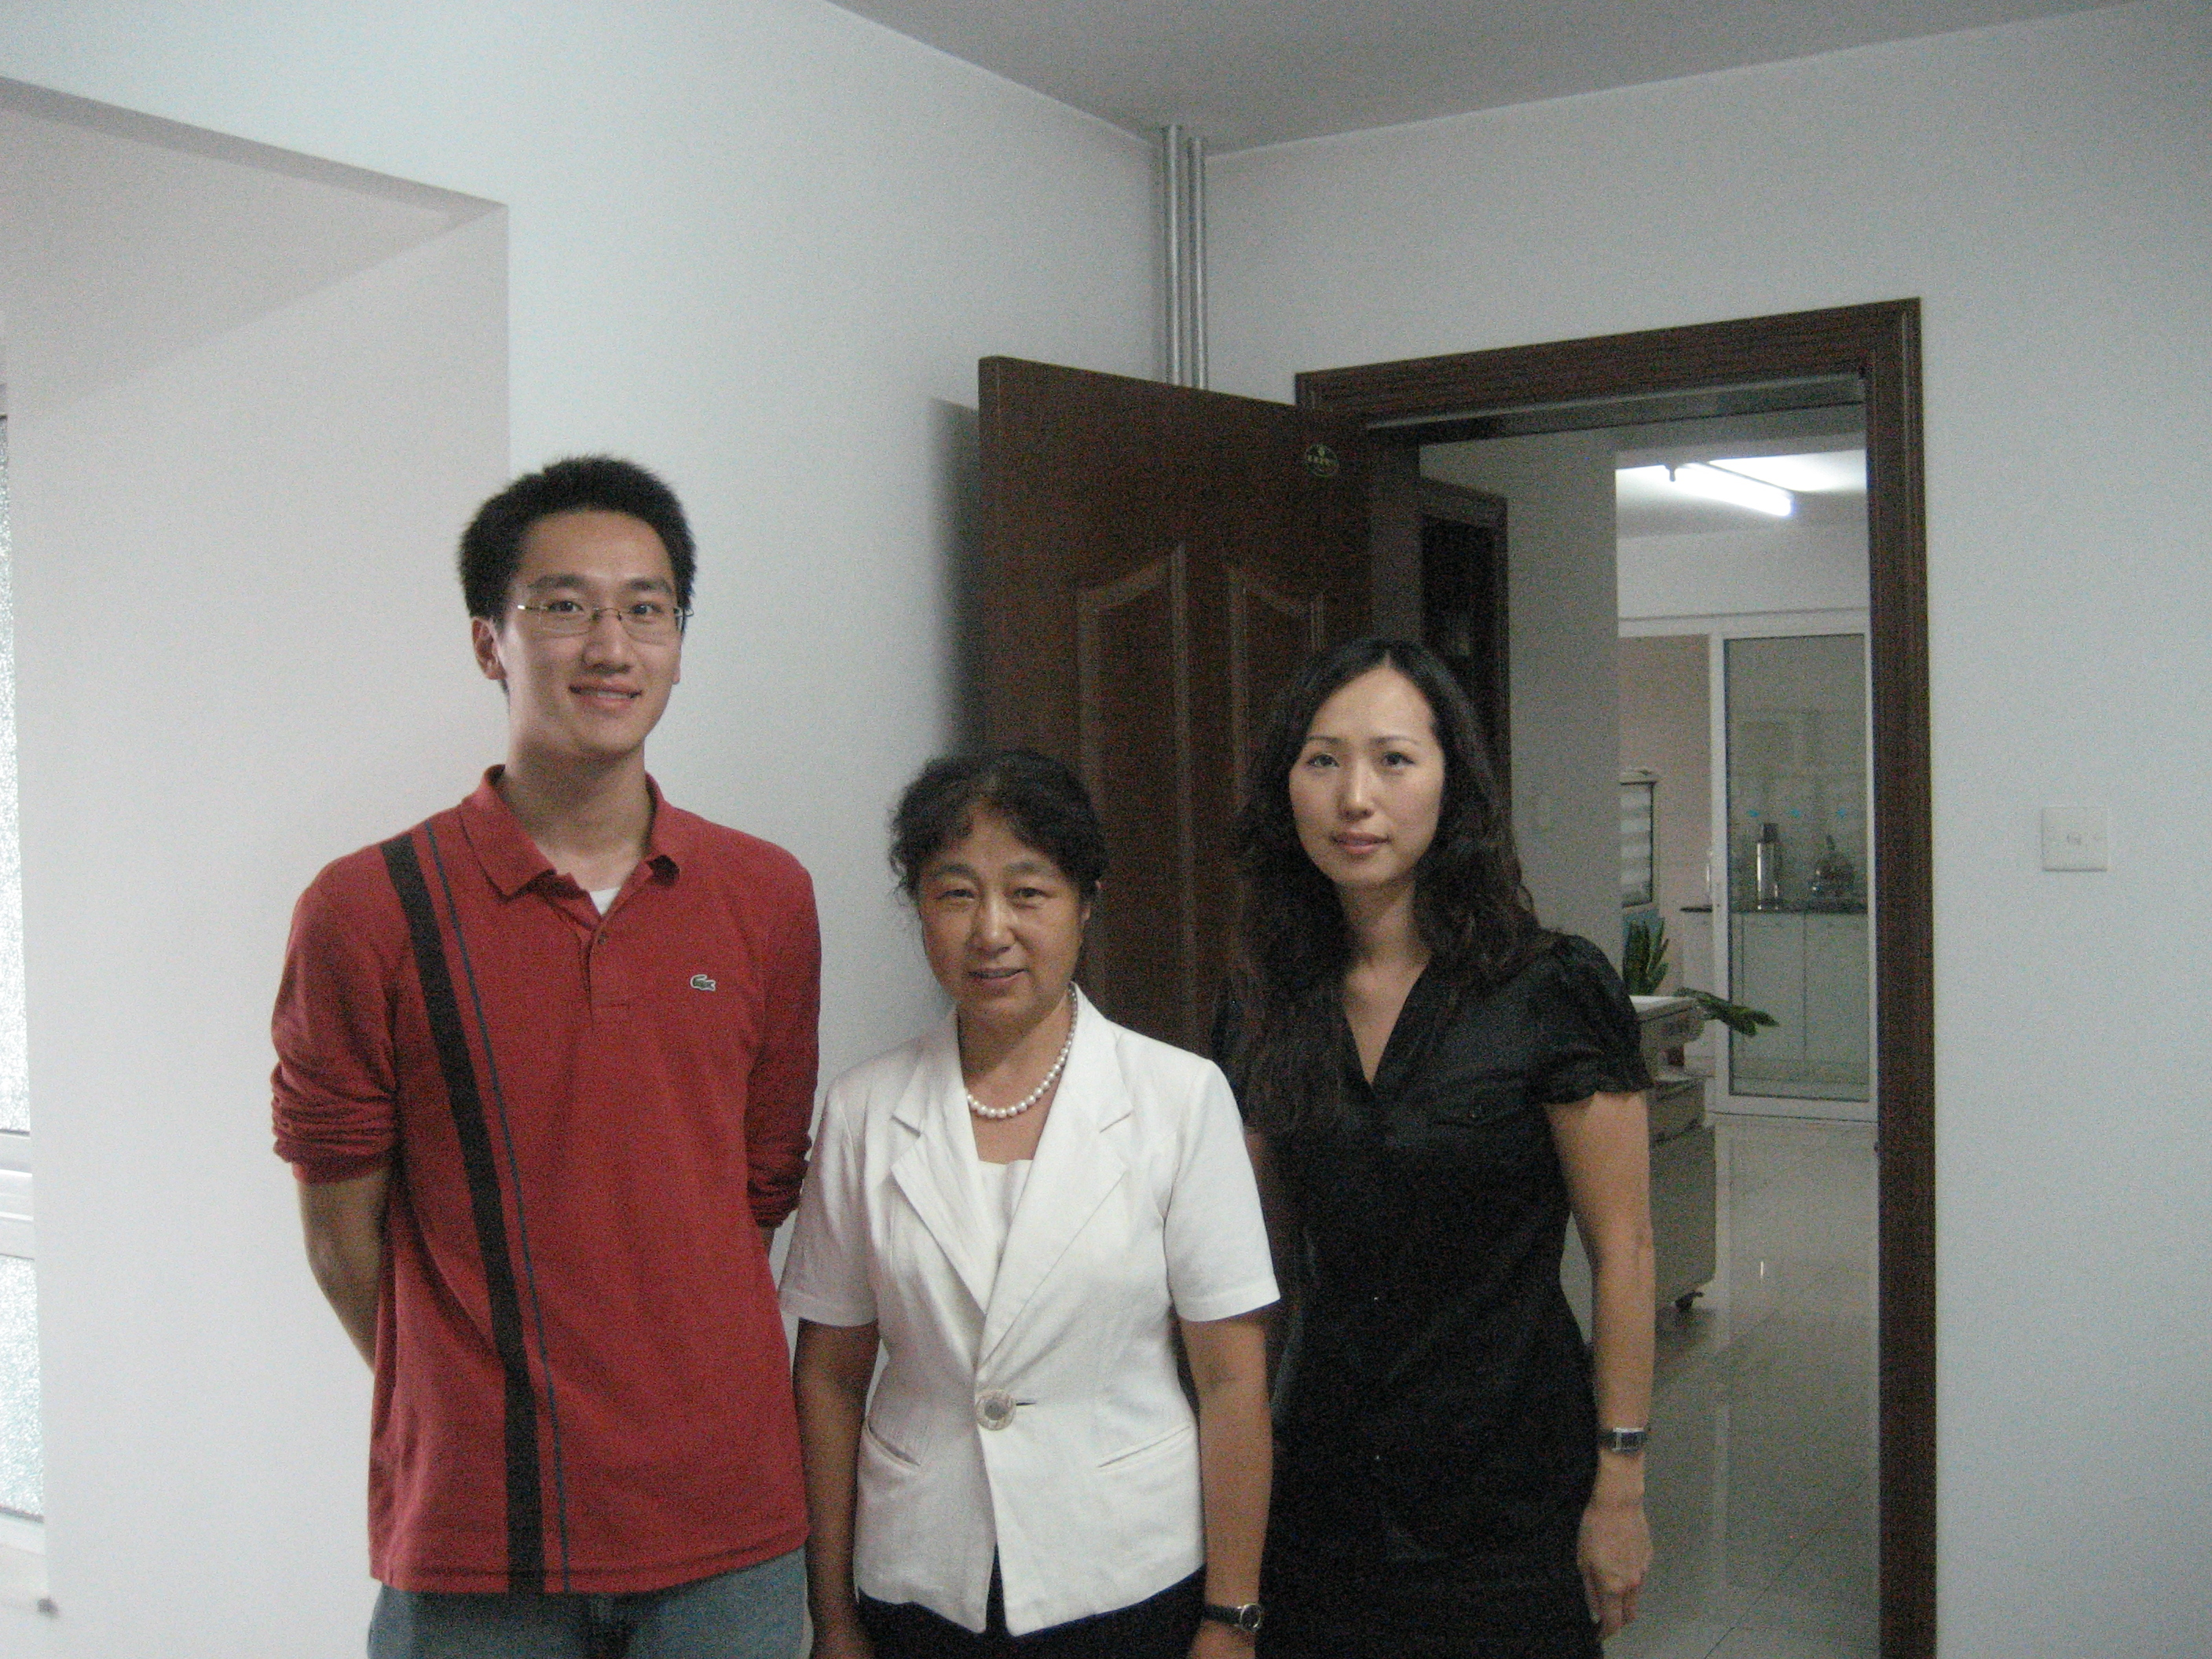 Lawyer extraordinaire, the selfless Ms. Kang Jian, is one of my heroes (center in white). She continues to fight for the rights of Chinese 'comfort women' survivors despite the roadblocks in Japan's courts. (Left - Eric the ABC intern at a Chinese NGO)